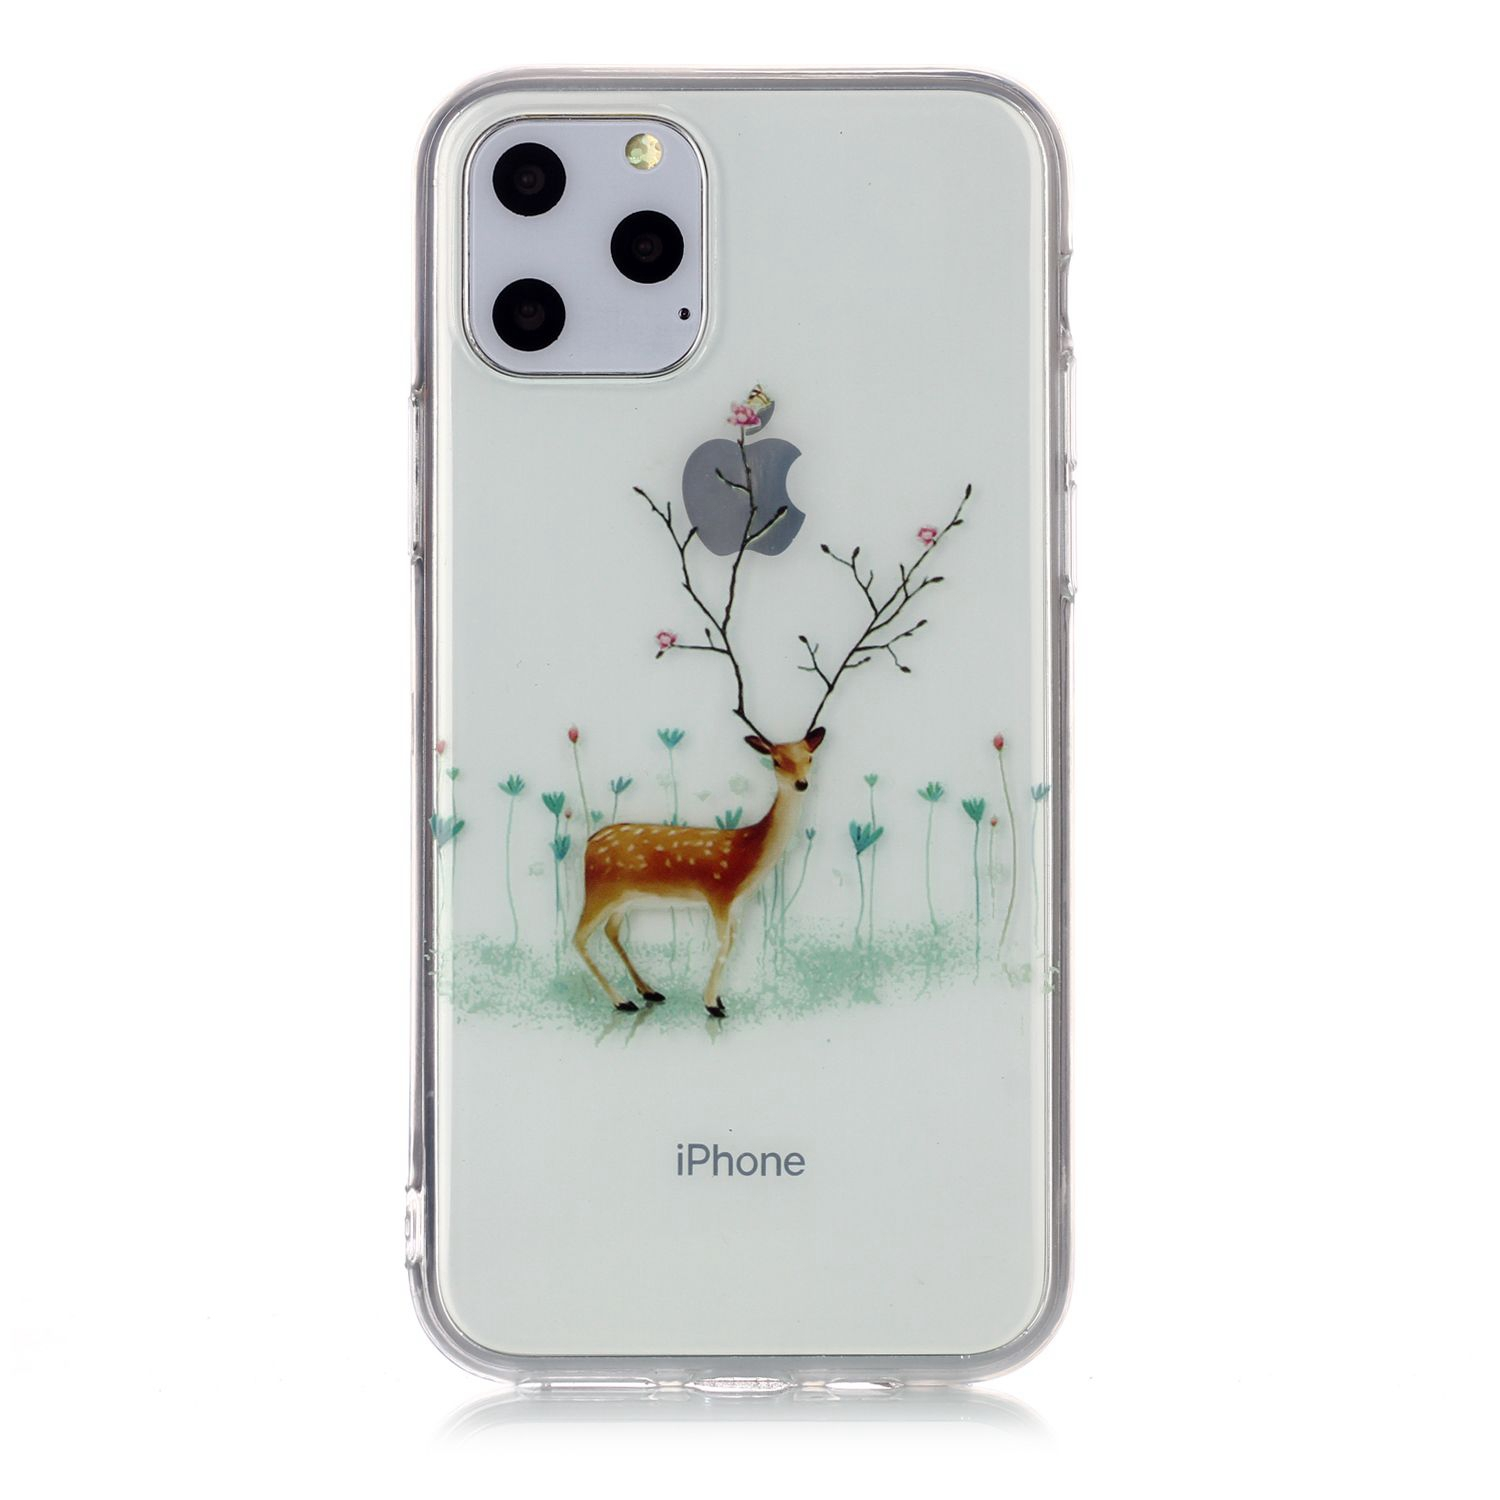 For Apple iPhone11 Pro Max Mobile Shell Soft TPU Phone Case Smartphone Cover Elk Snow Christmas Series Pattern Protective Shell